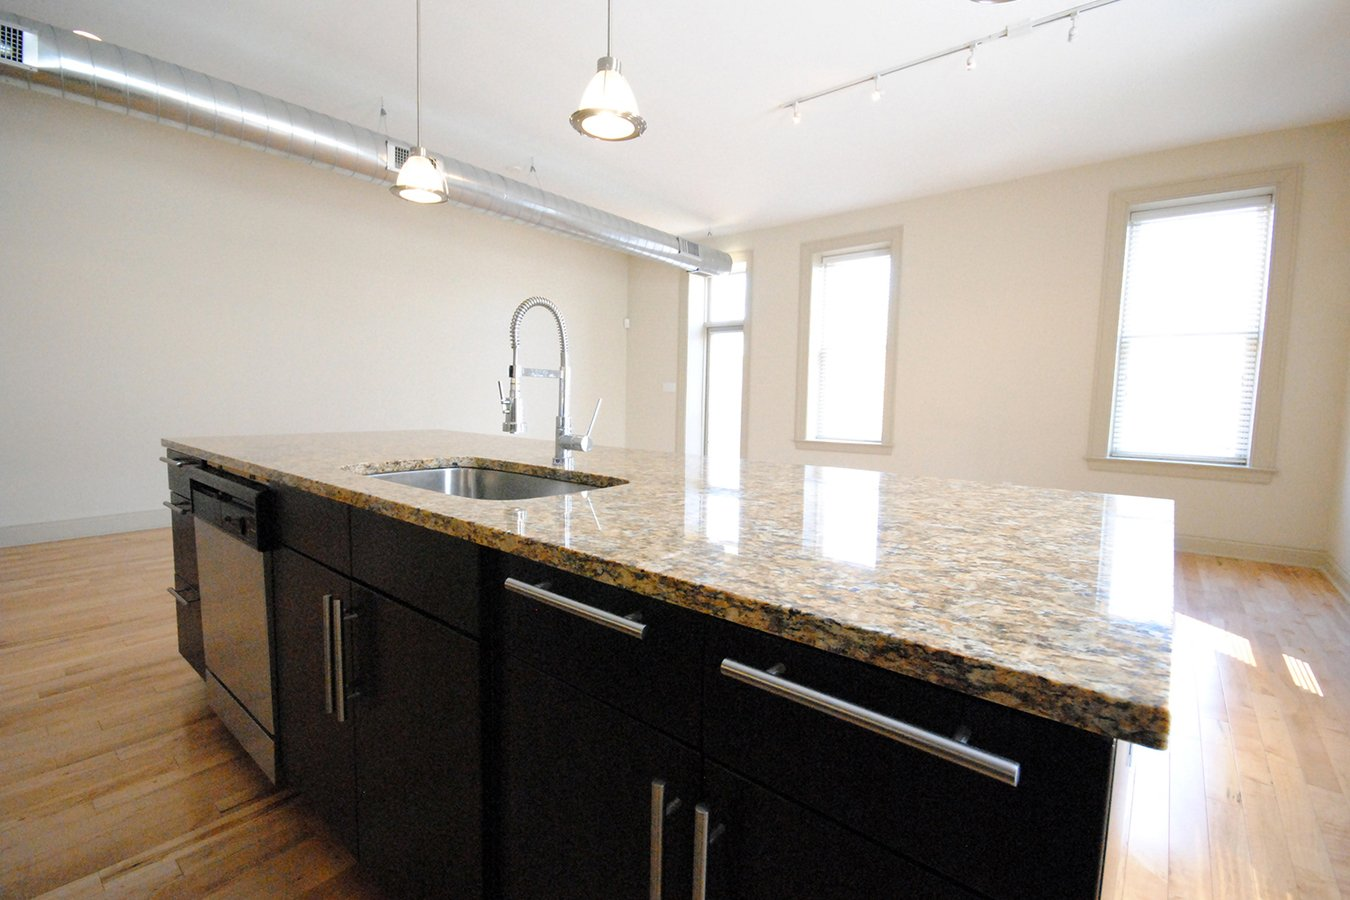 2 Bedrooms 2 Bathrooms Apartment for rent at 4701 Mcpherson in St Louis, MO